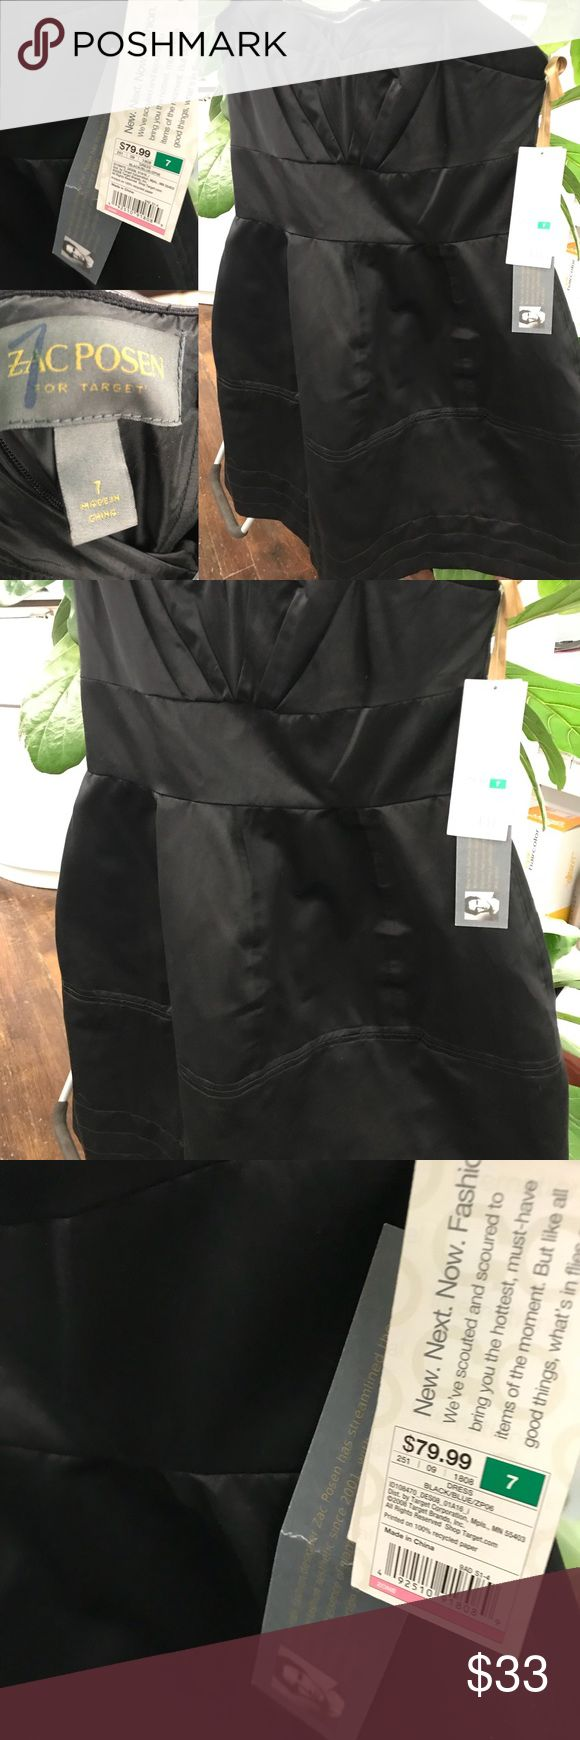 Black Zac Posen for Target dress Siper cute tulip shape dress . Great for New Year's Eve or date night . Got it on PM but it's too small for me.  Size 7. Zac Posen for Target Dresses Mini